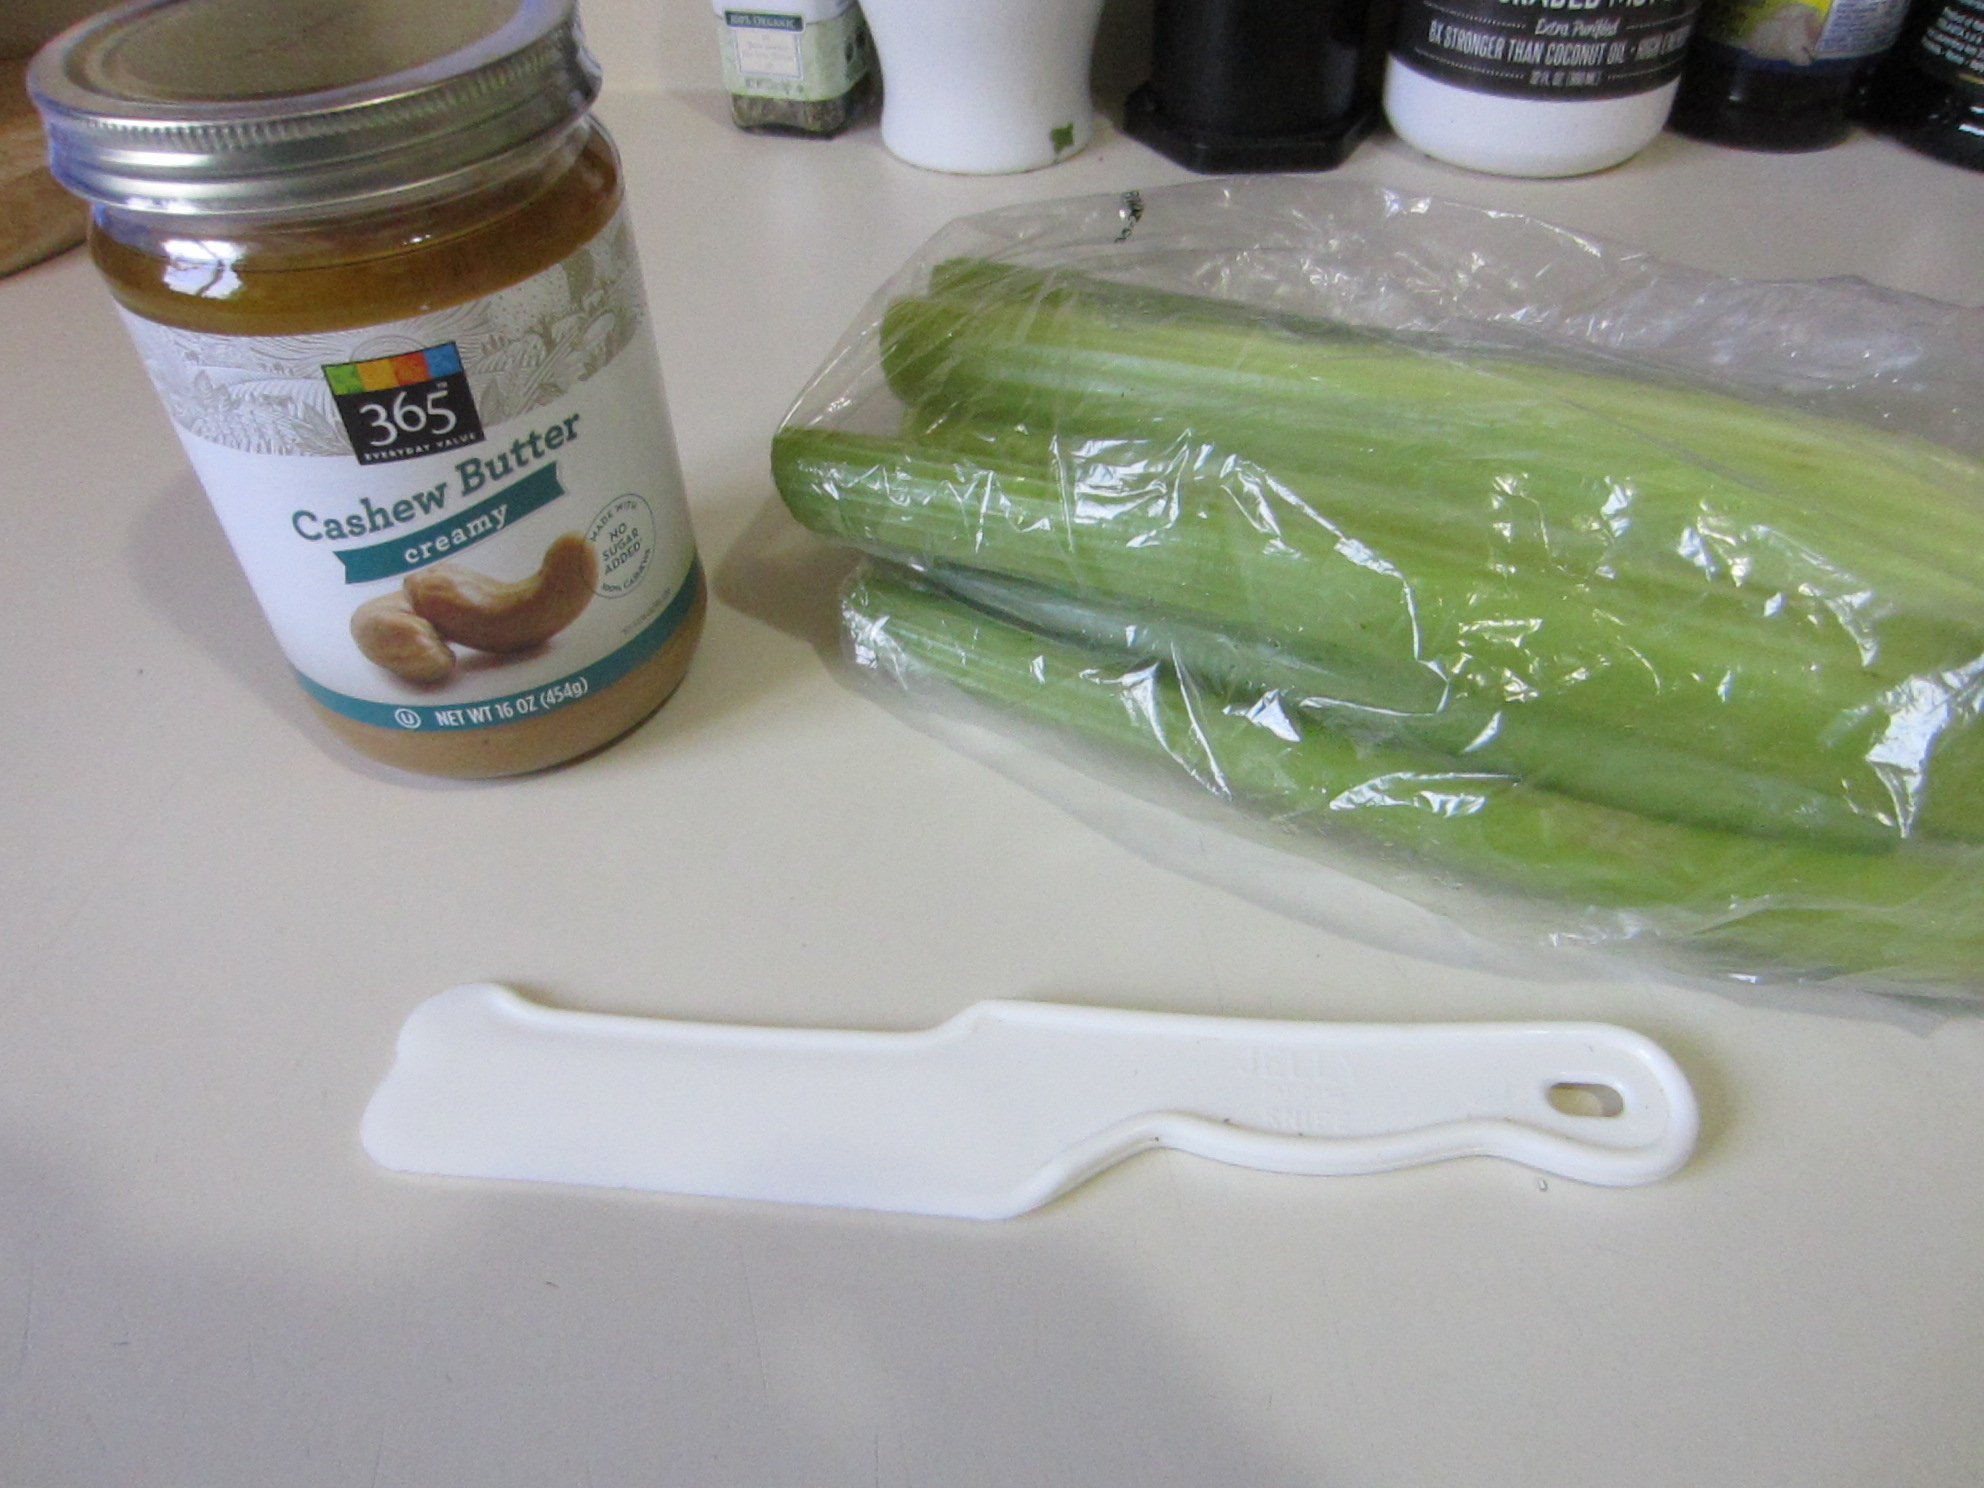 Celery and Cashew Butter